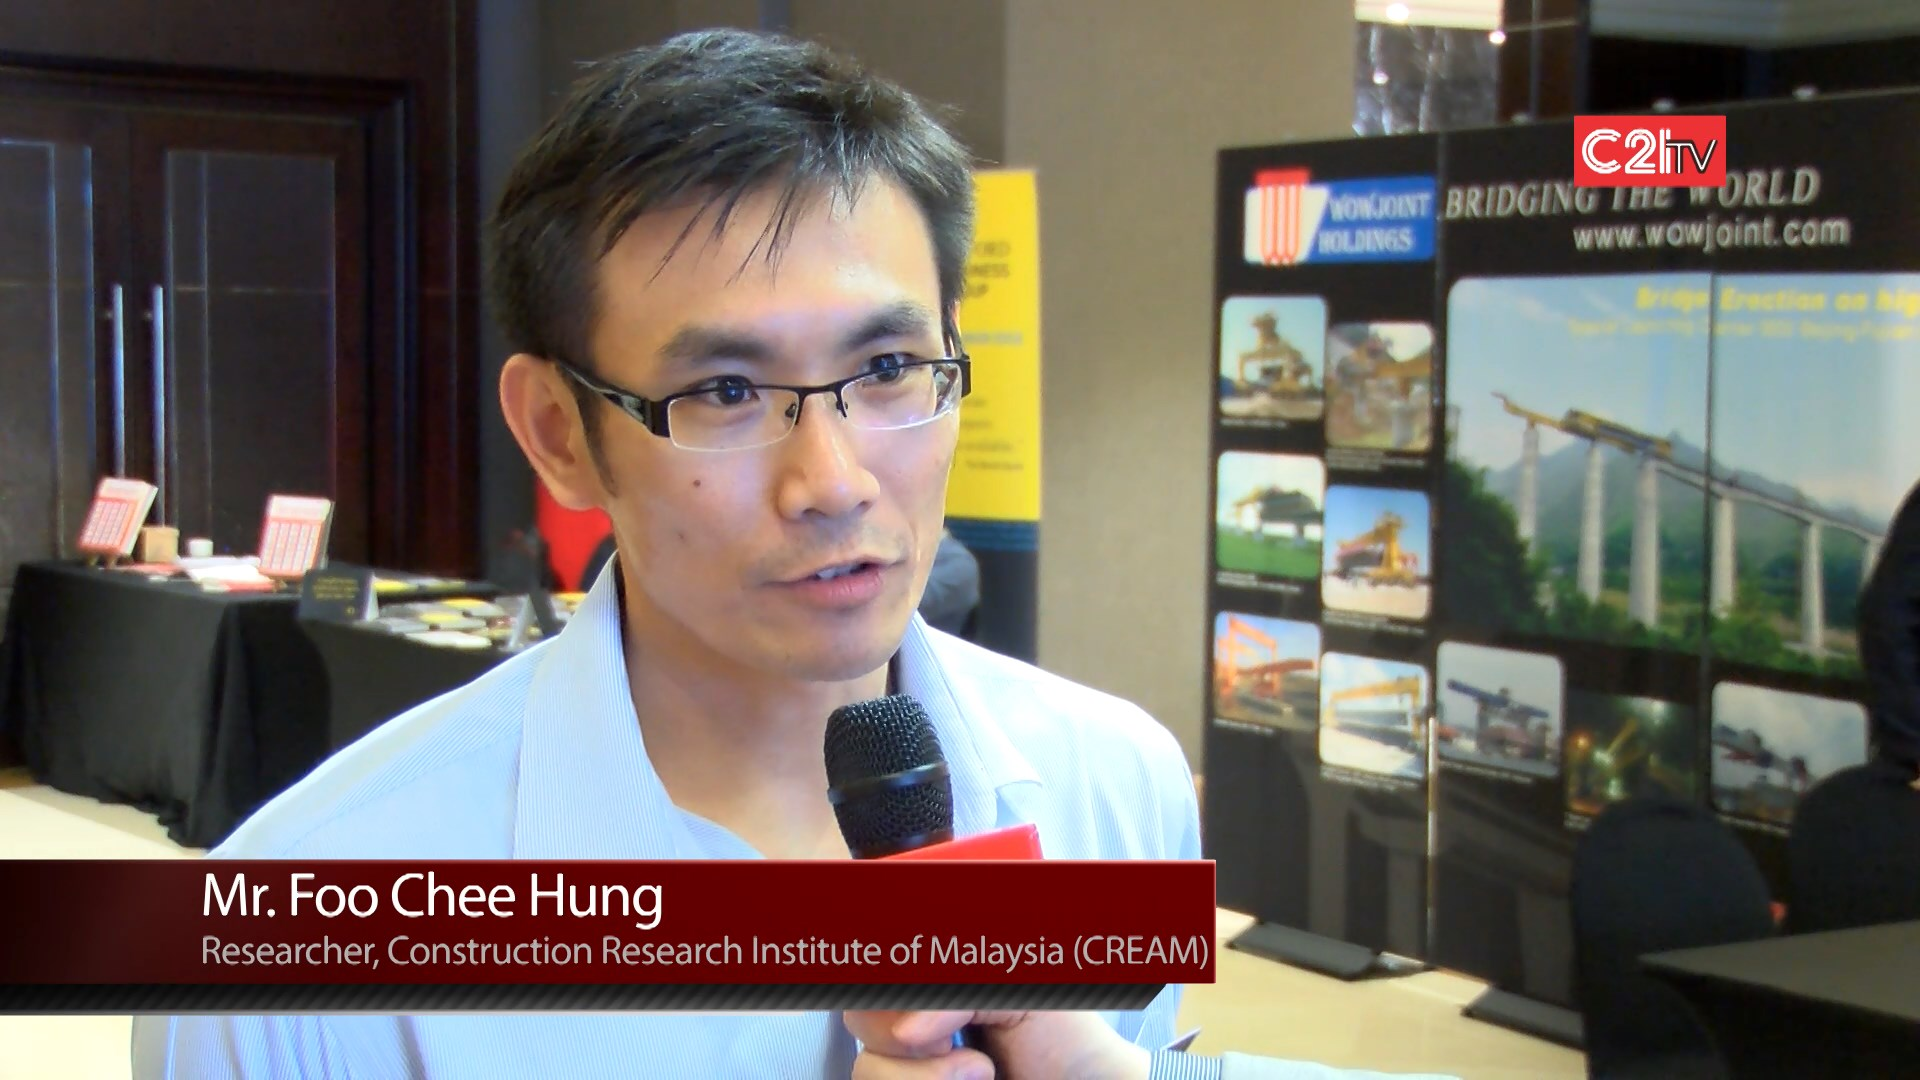 Construction Research Institute Of Malaysia (CREAM)